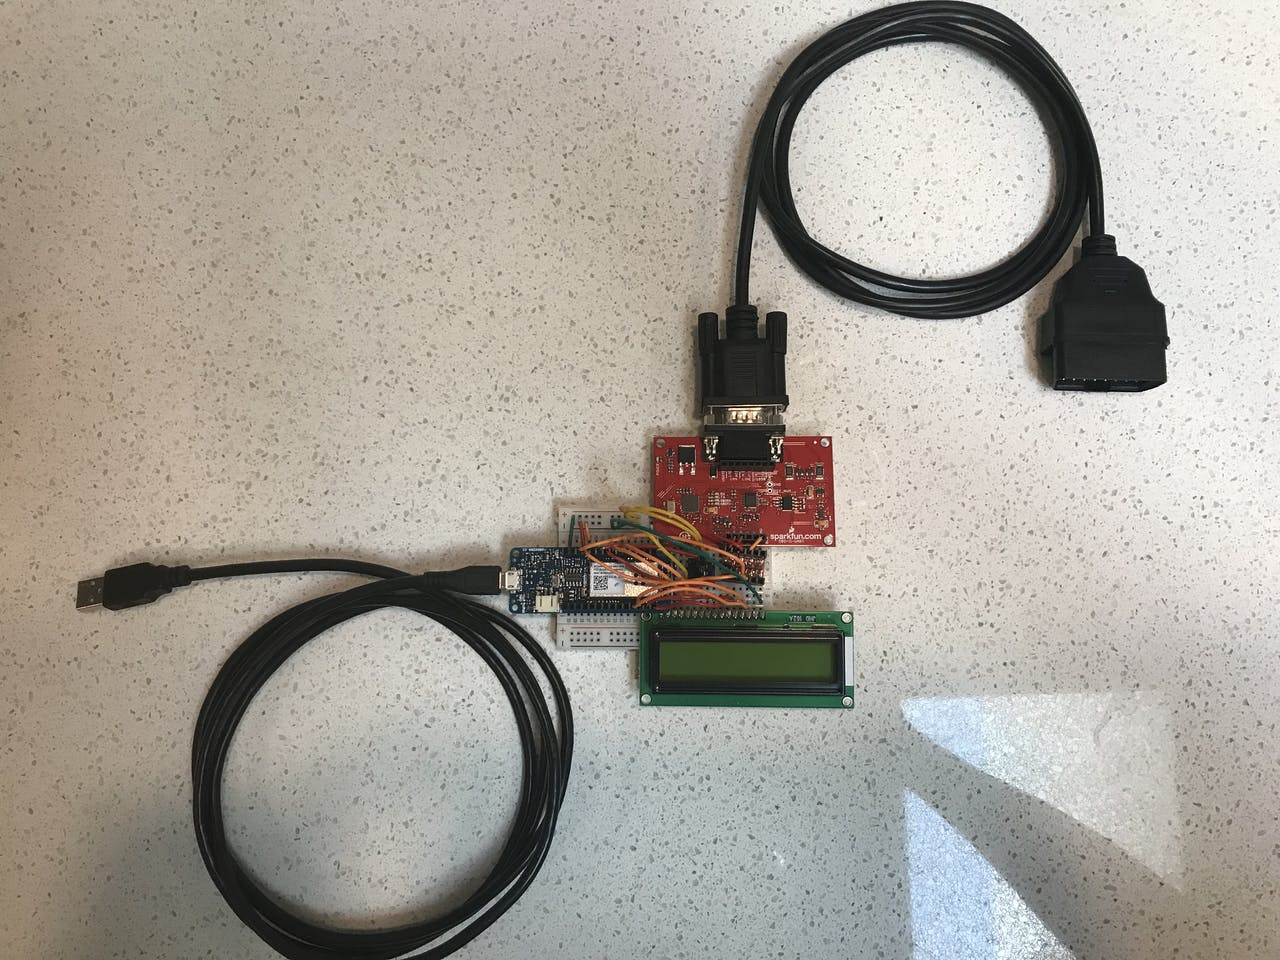 Iot4car Circuit Picture Sorry About The Messy Wiring